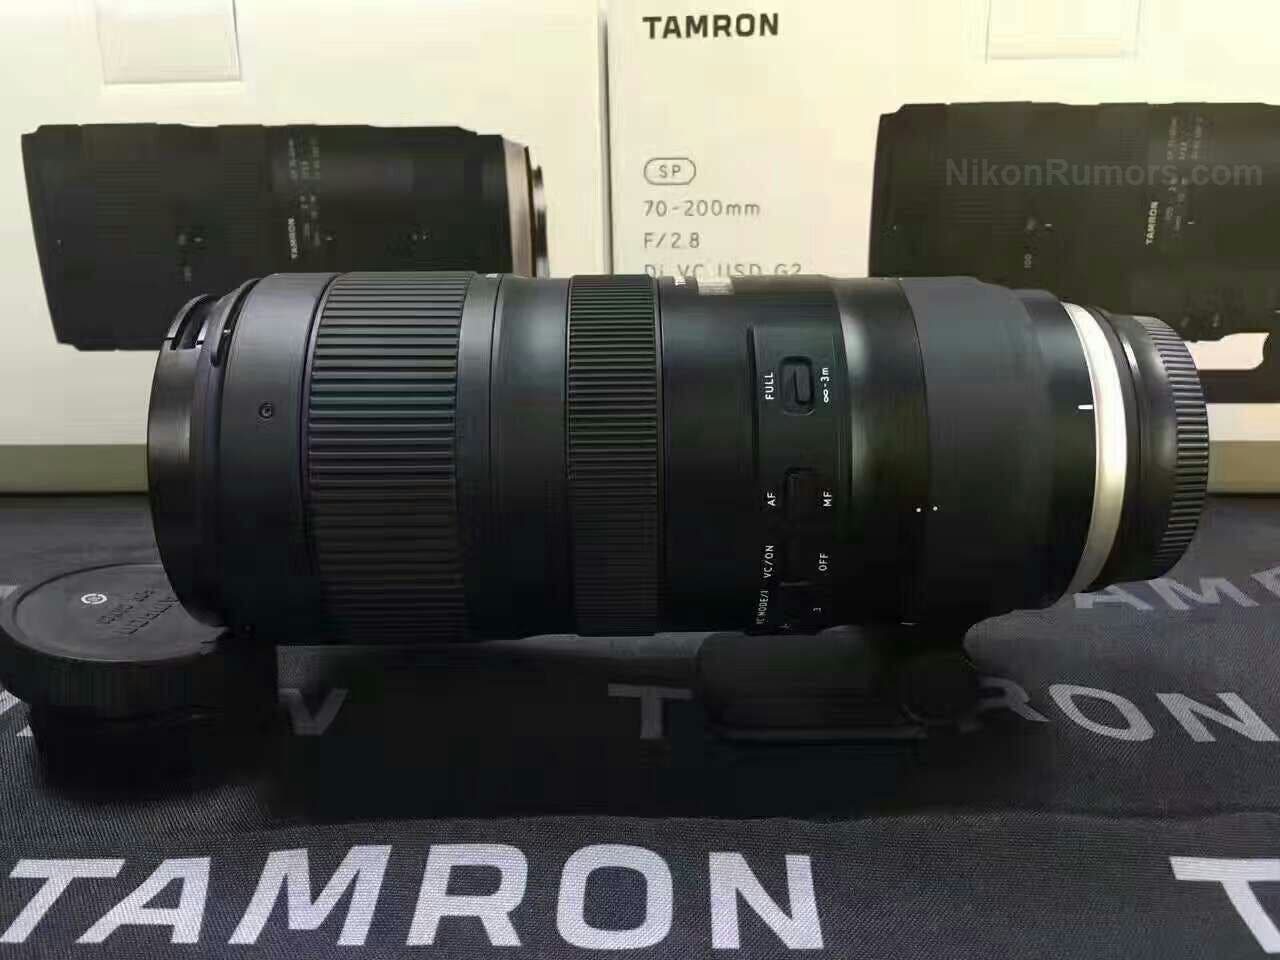 Tamron 70-200mm F2.8 Product Images Leak Ahead of CP+